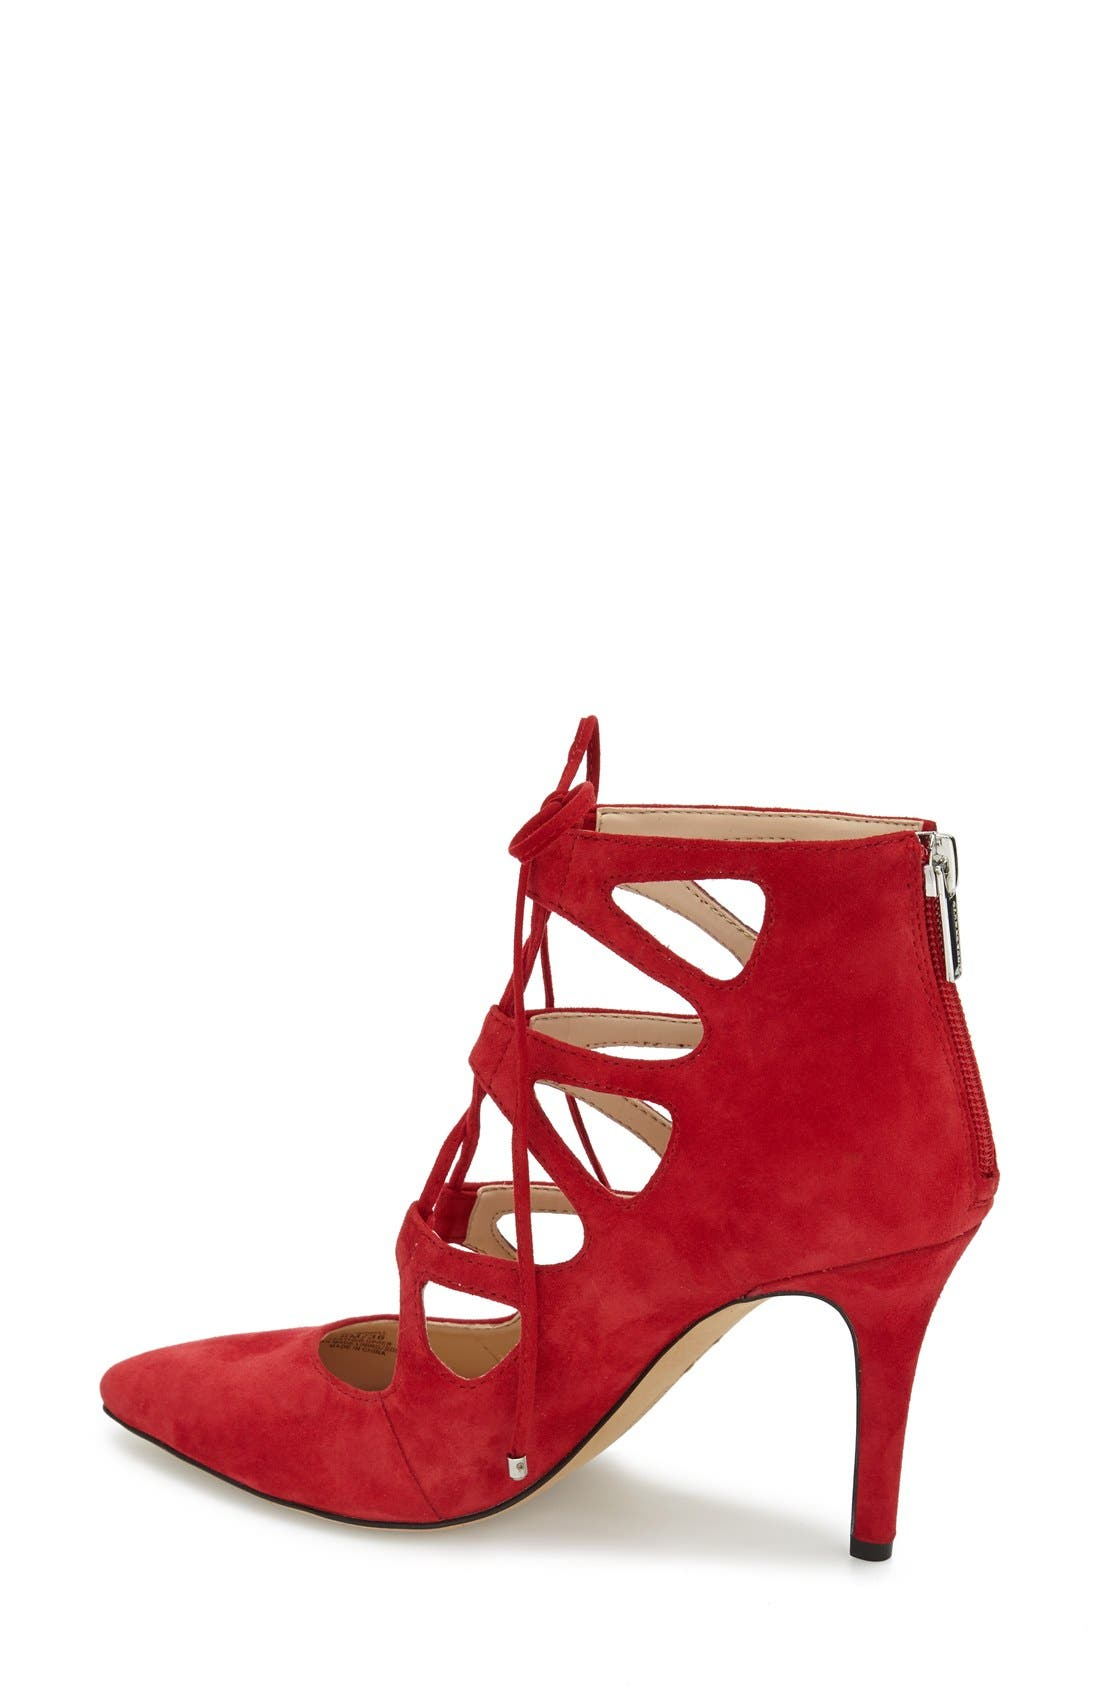 'Bodell' Lace Up Pump,                             Alternate thumbnail 2, color,                             Love Affair Suede